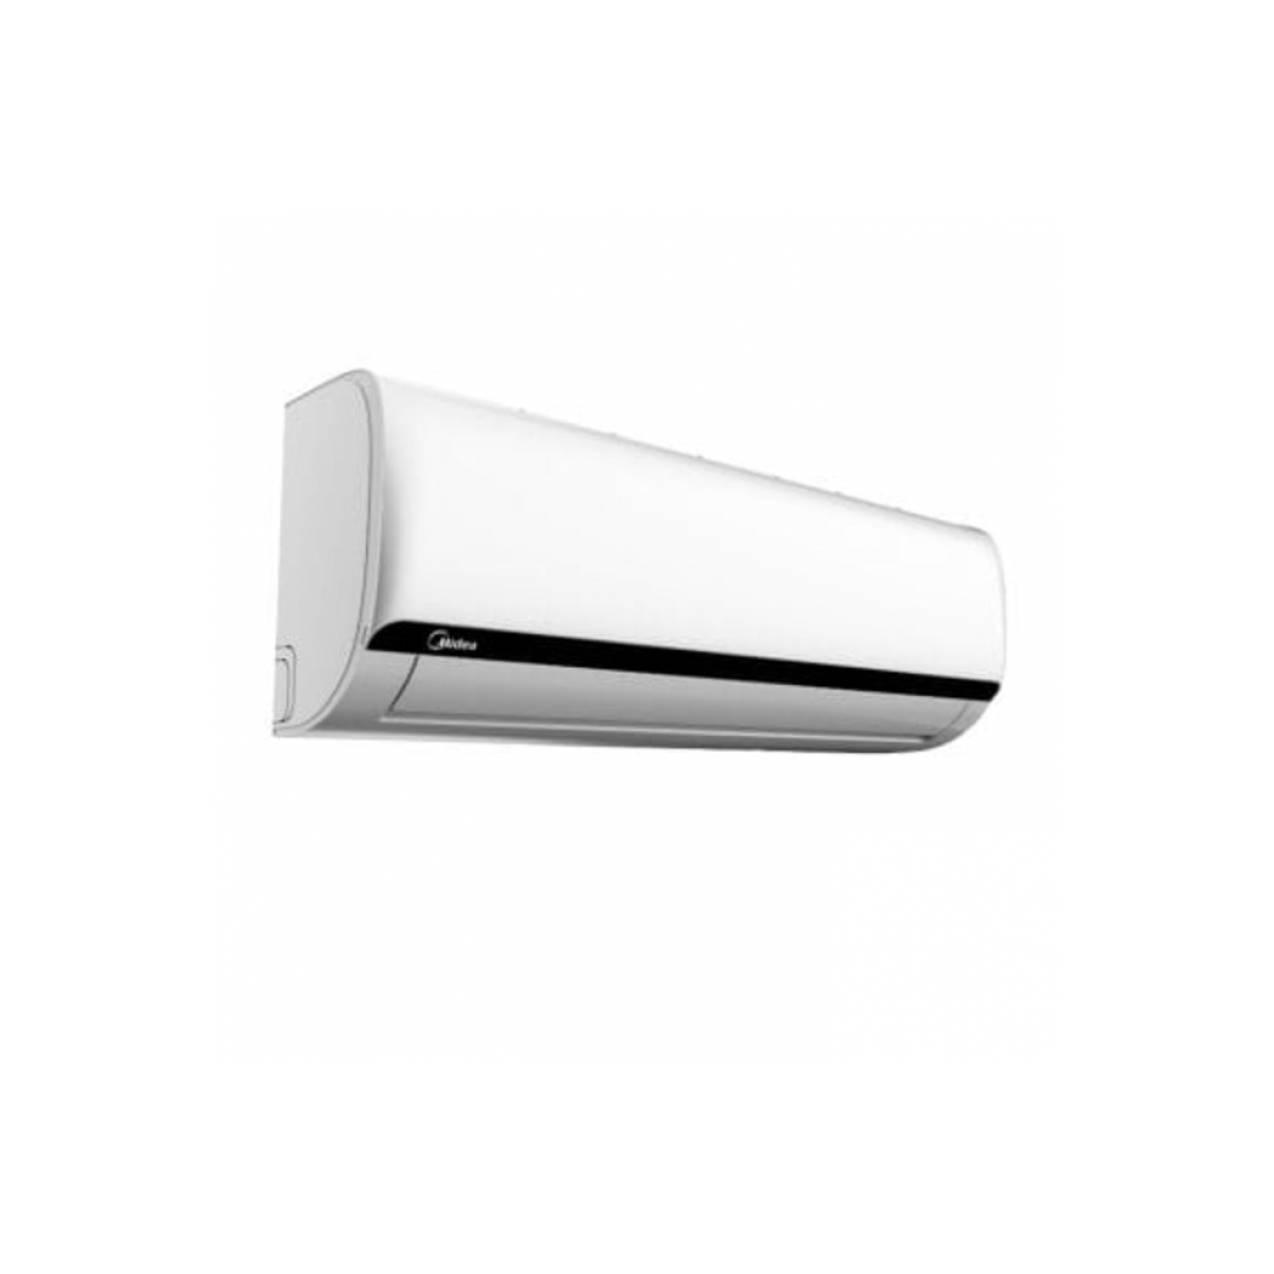 Midea AC standard 1/2 PK (Indoor + Outdoor)